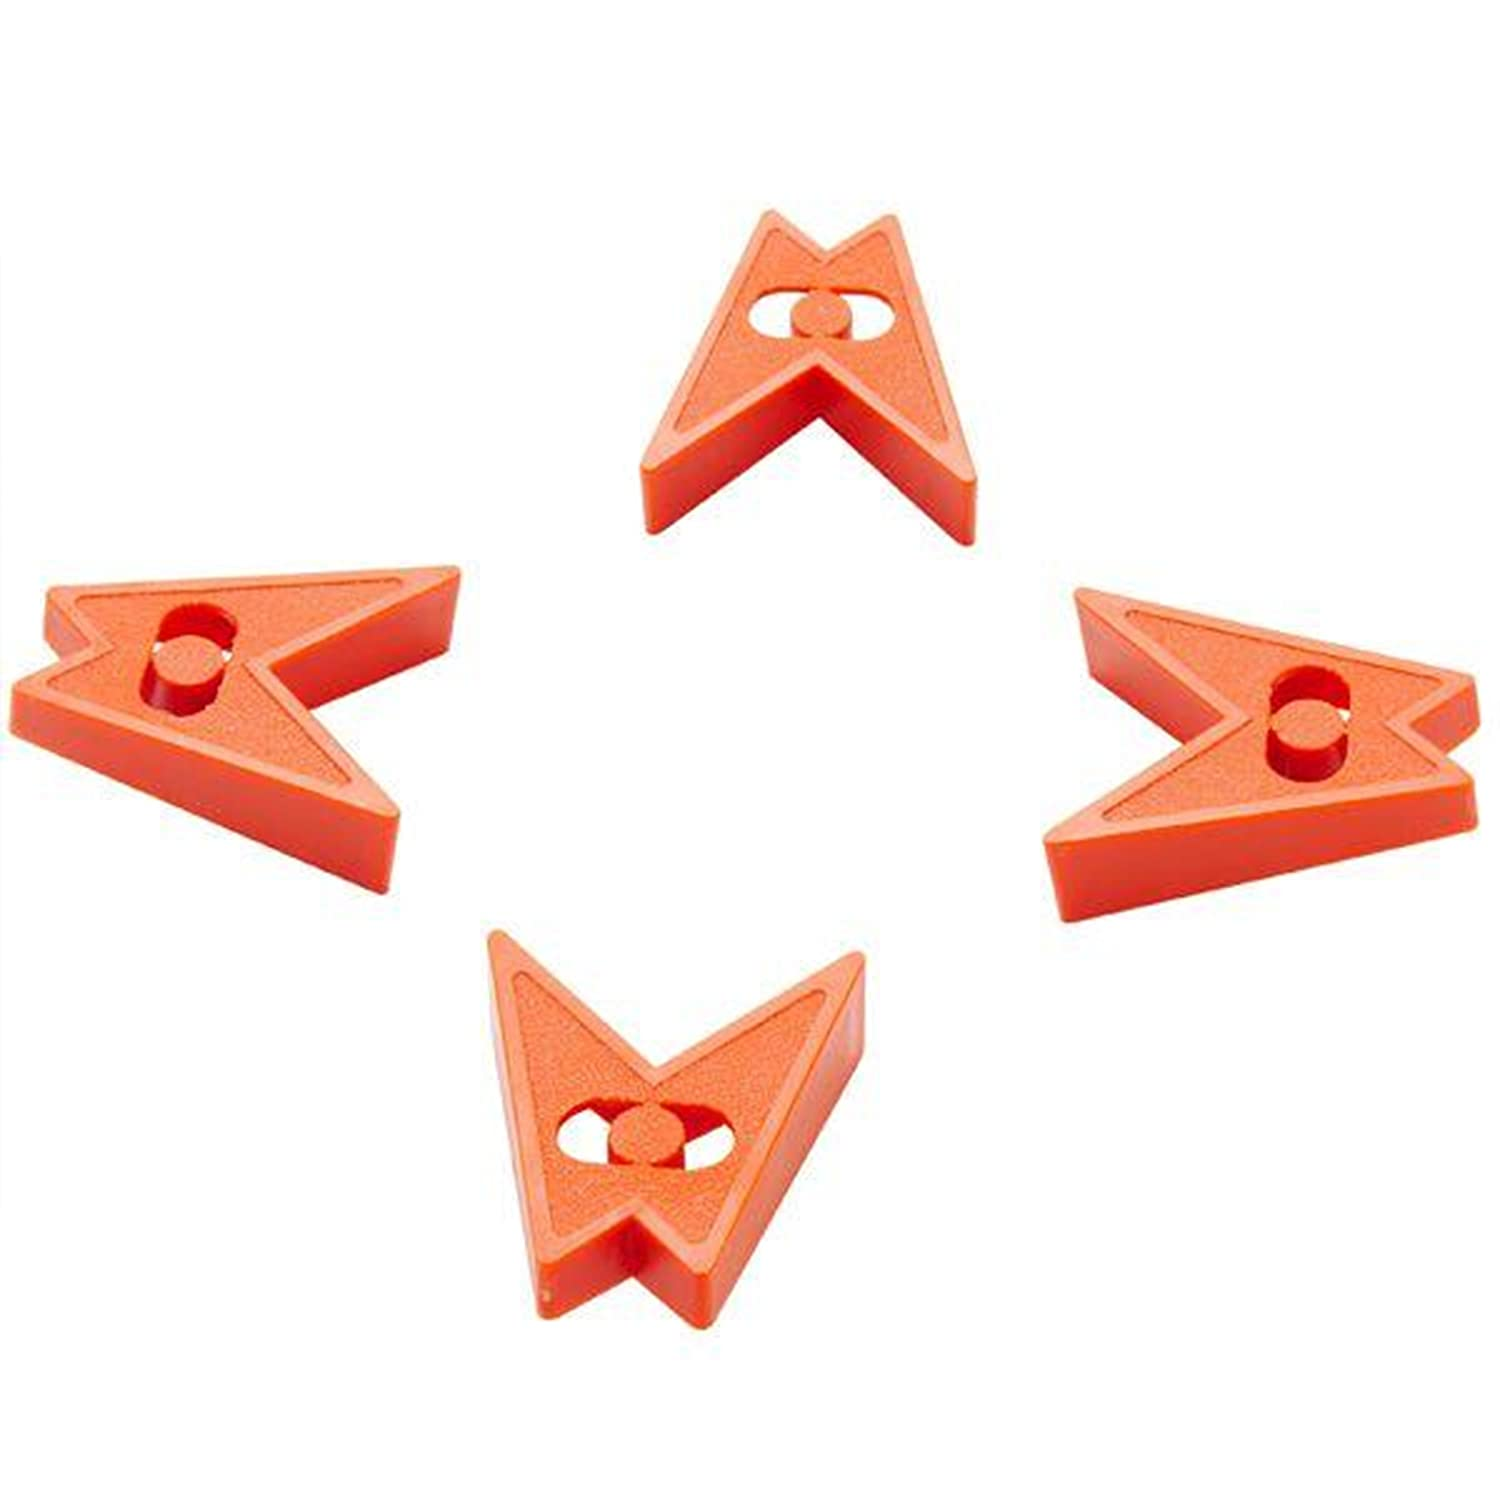 Extra Corners for Self-Squaring Frame Clamp Woodcraft Supply